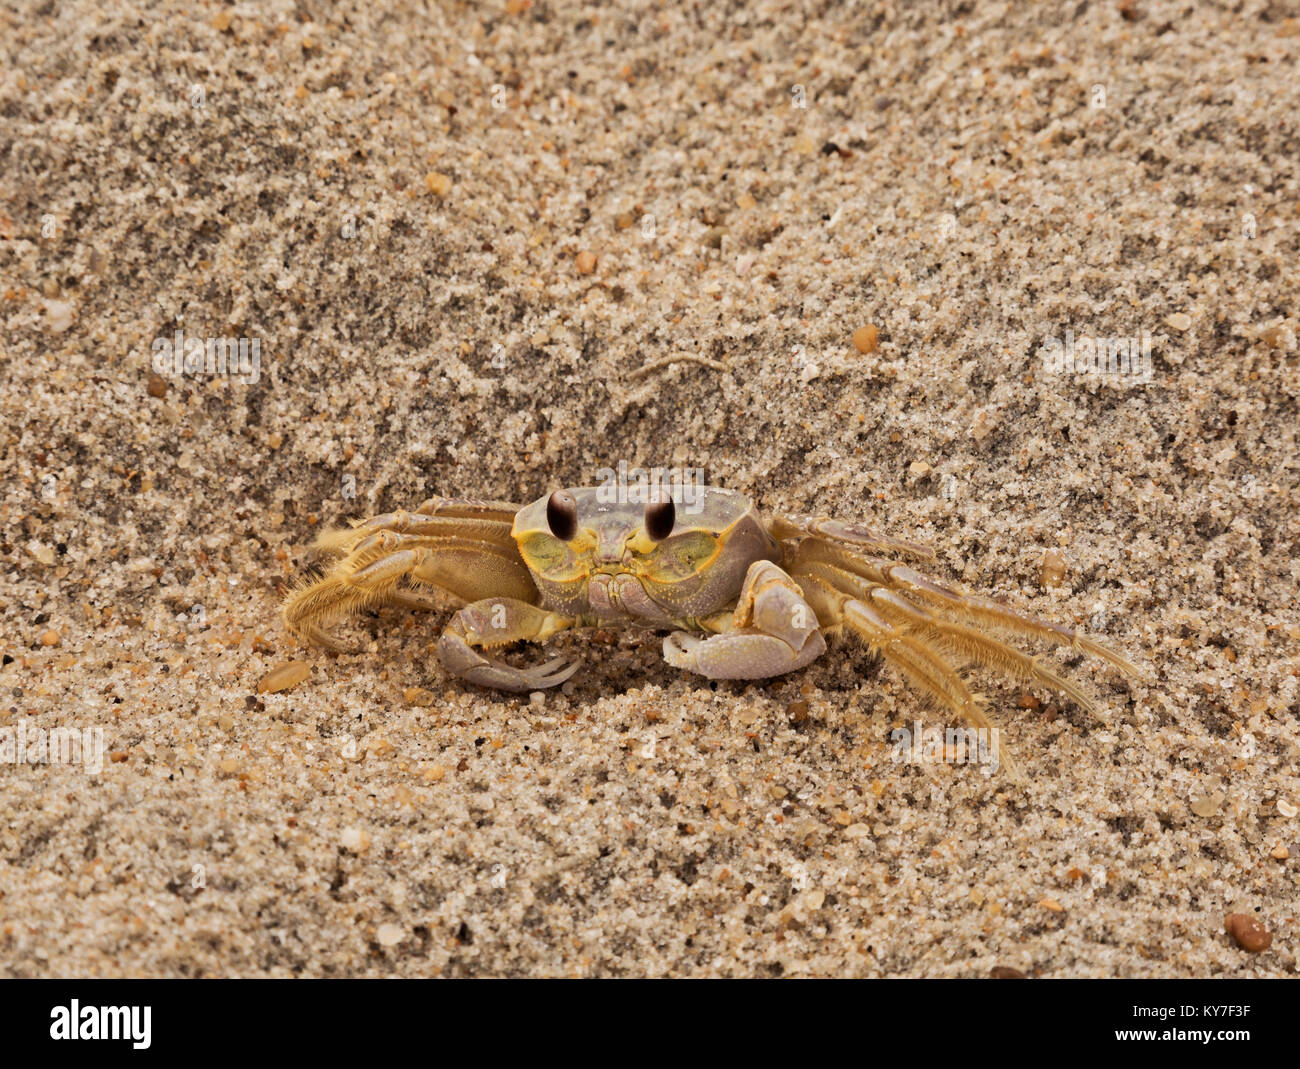 NC01272-00...NORTH CAROLINA - A ghost crab on an beach along the Atlantic Ocean on the Outer Banks. Stock Photo